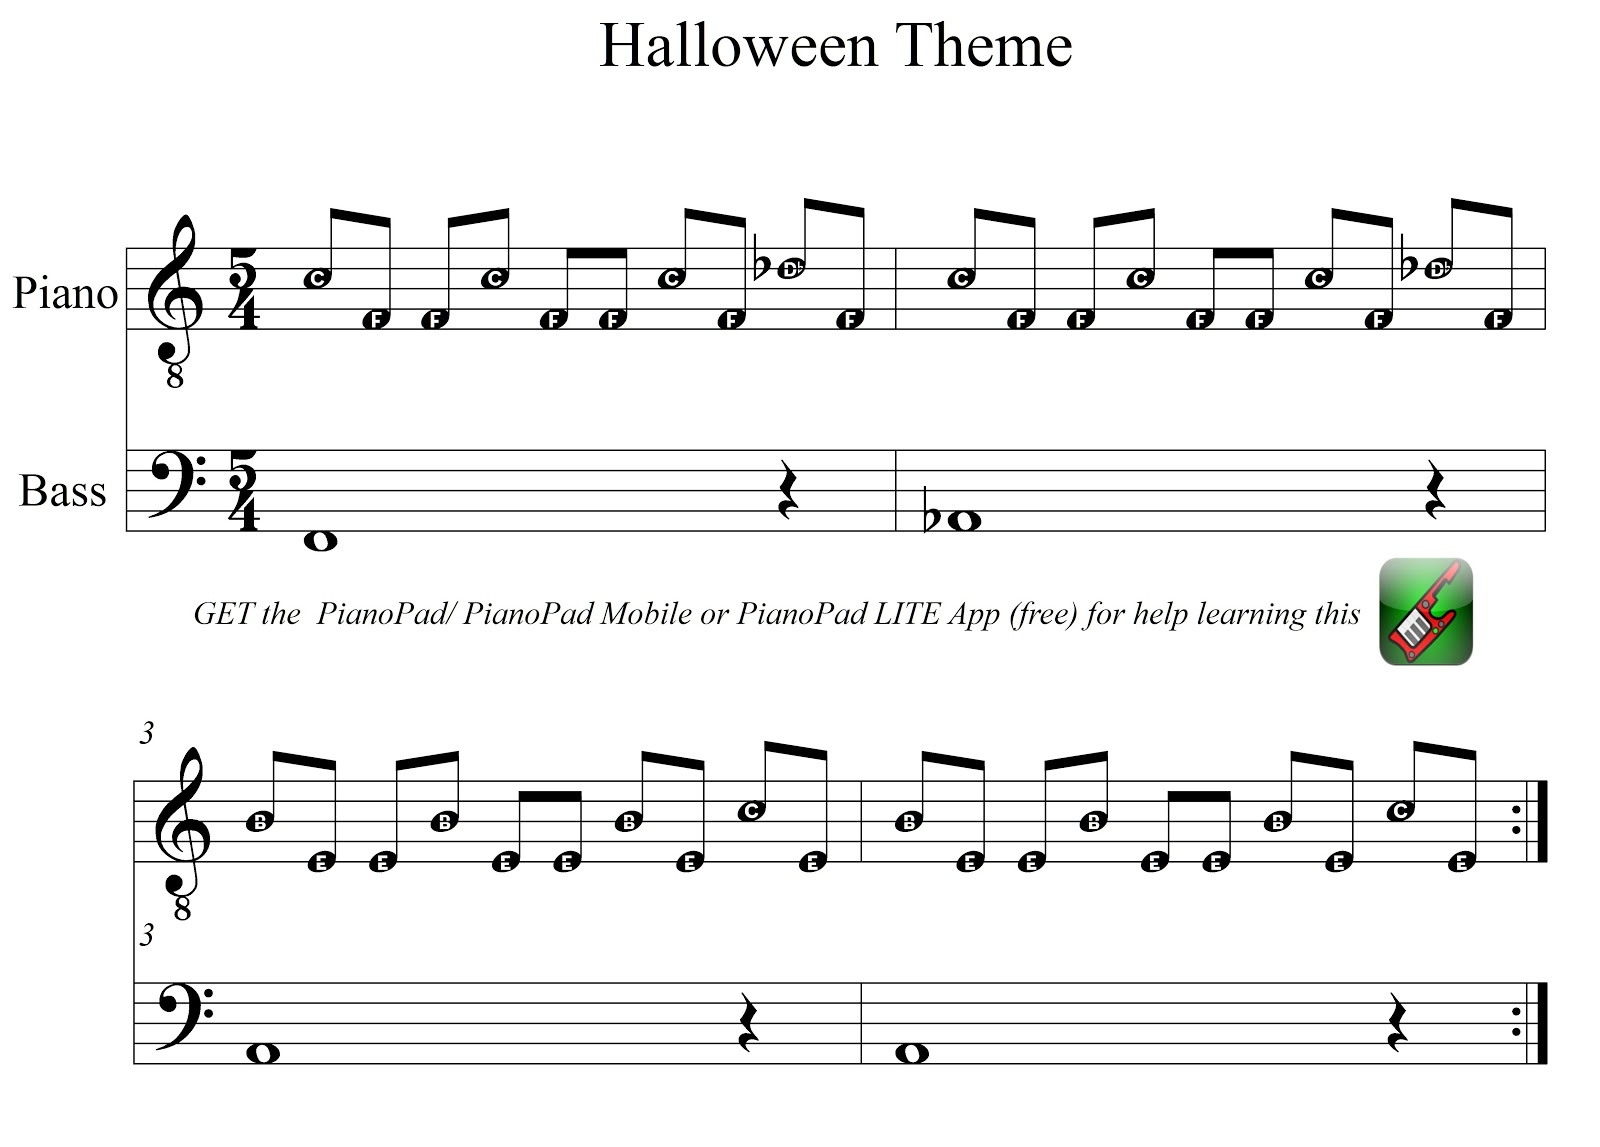 pianopad upload community reposted in time for oct 31 this song pianopad upload community reposted in time for oct 31 this song halloween theme song - Halloween Theme Song Guitar